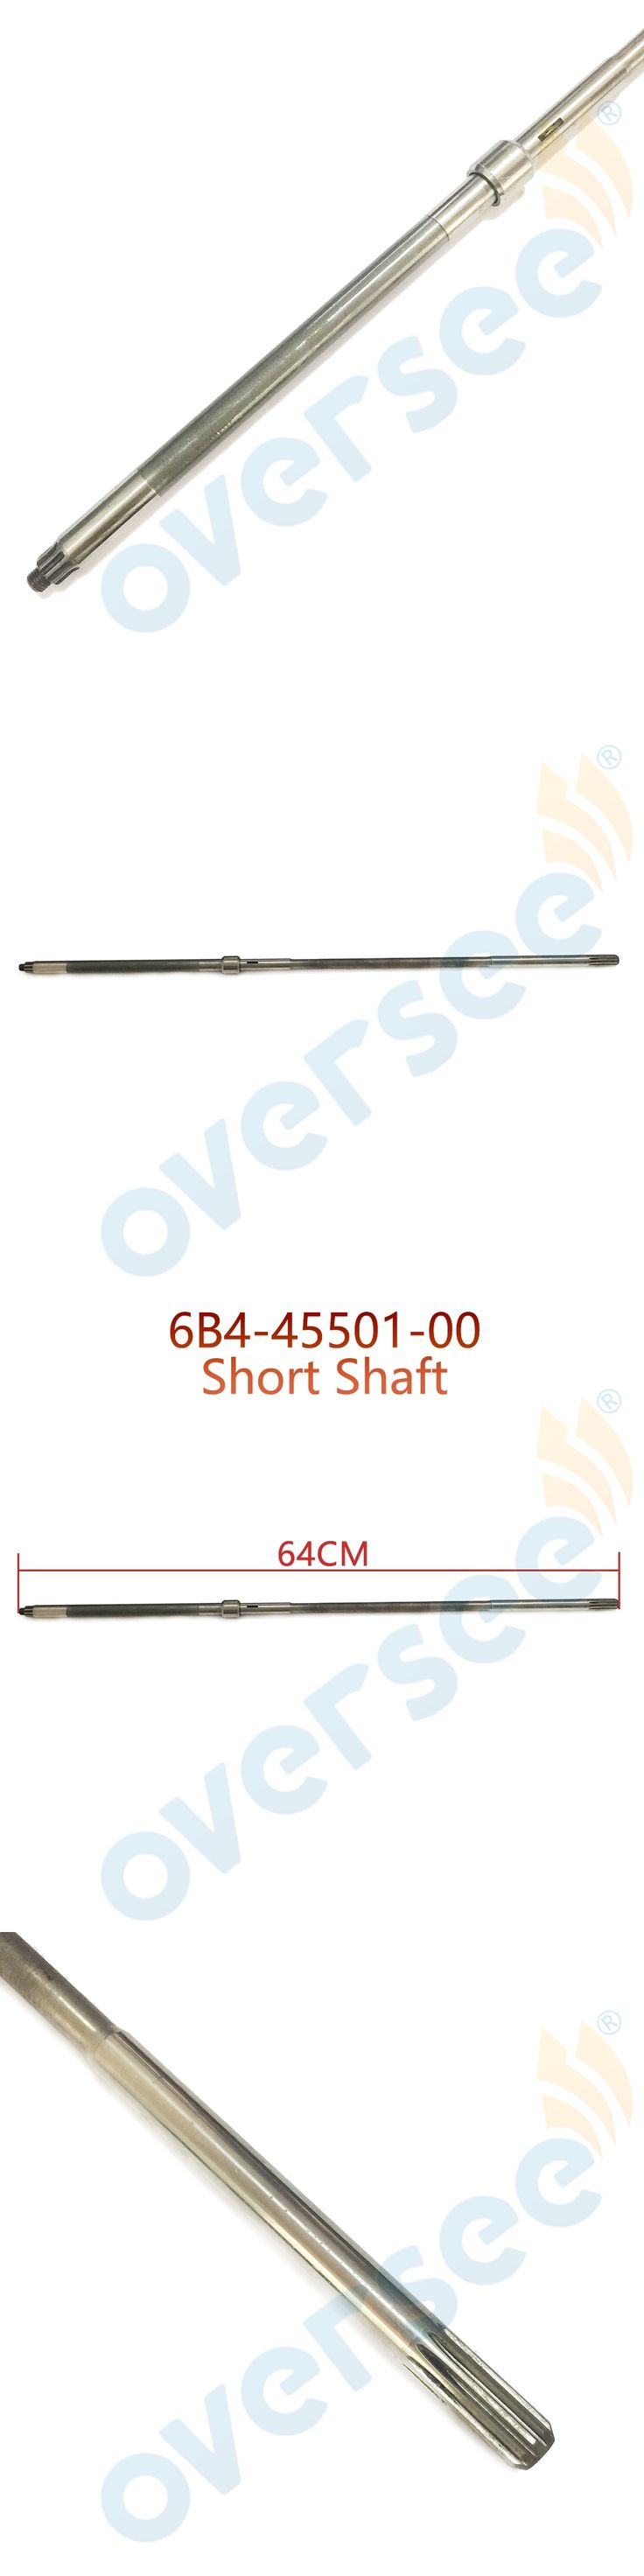 6B4-45501-00 DRIVE SHAFT COMP Short For Yamaha 9.9HP 15HP 2-Stroke 4-Stroke Outboard Engine,Boat Motor Aftermarket parts 64MM